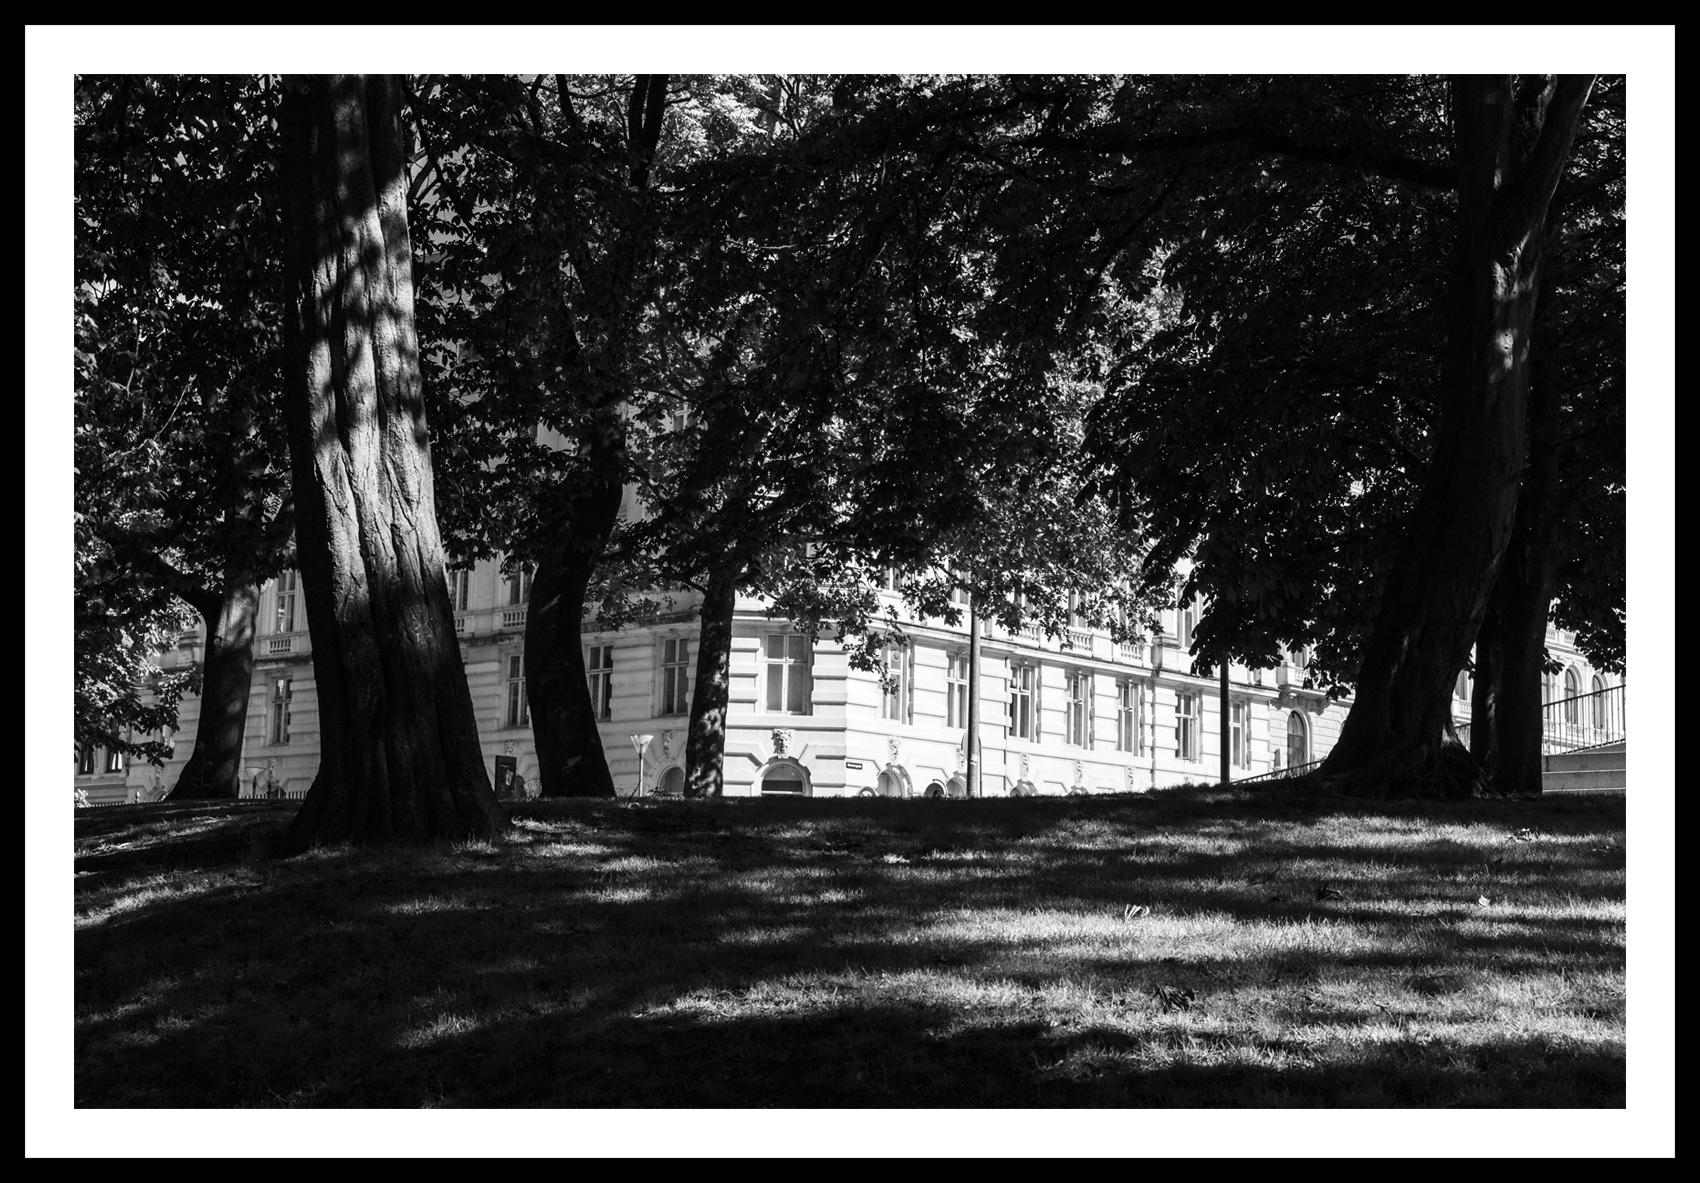 Parklife_I_2020_D14C2633_2020_CURATED_FRAME